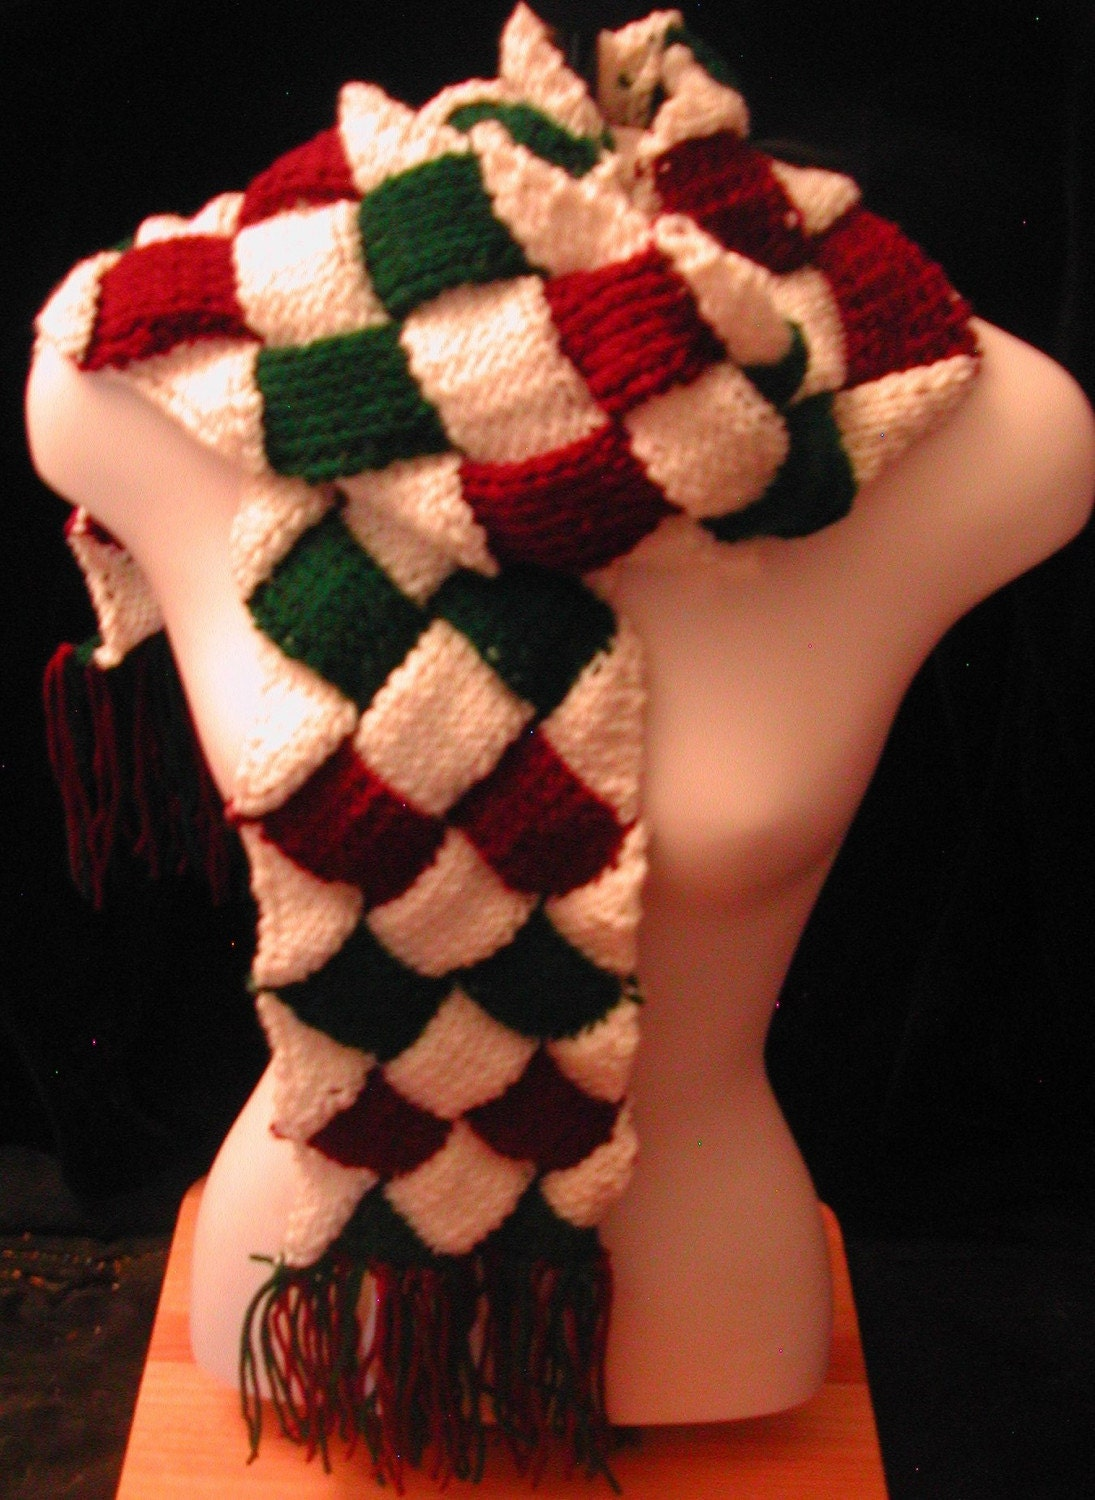 Red and green scarf is very warm!